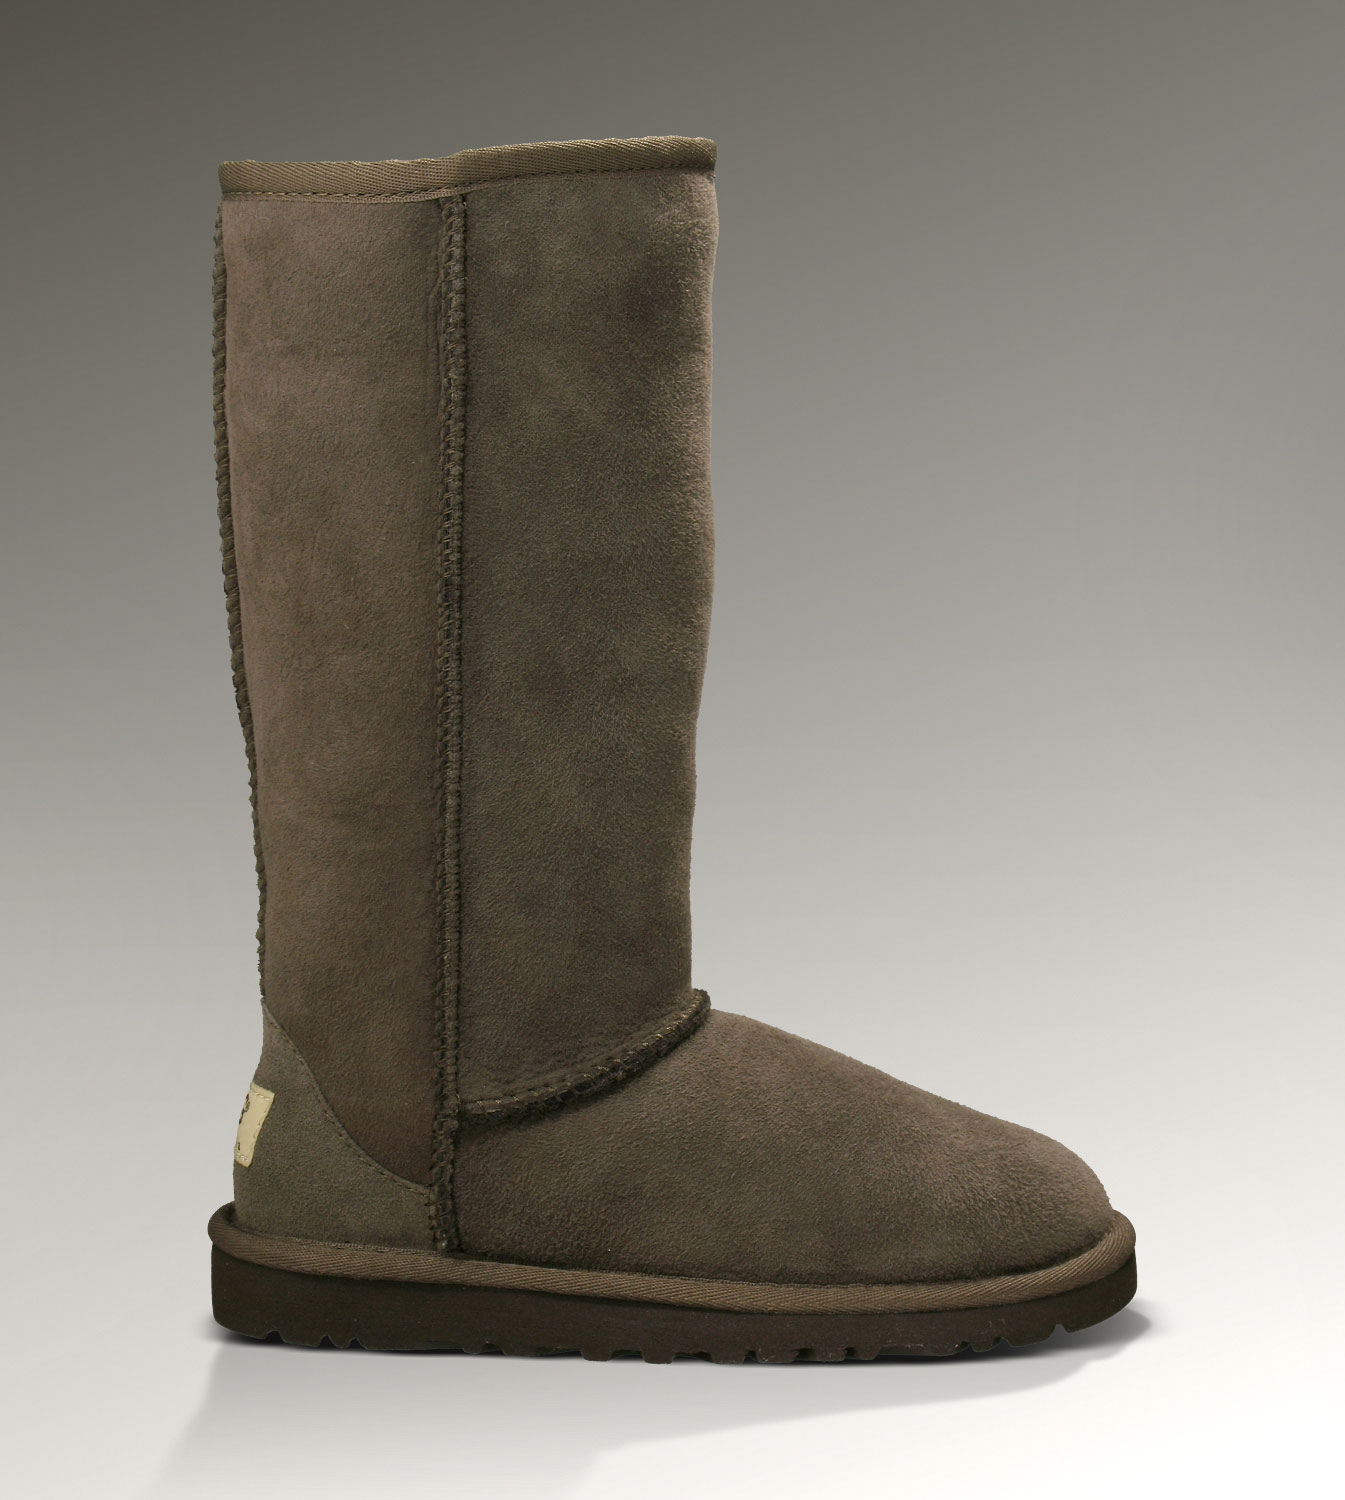 UGG Classic Tall 5229 Chocolate Boots